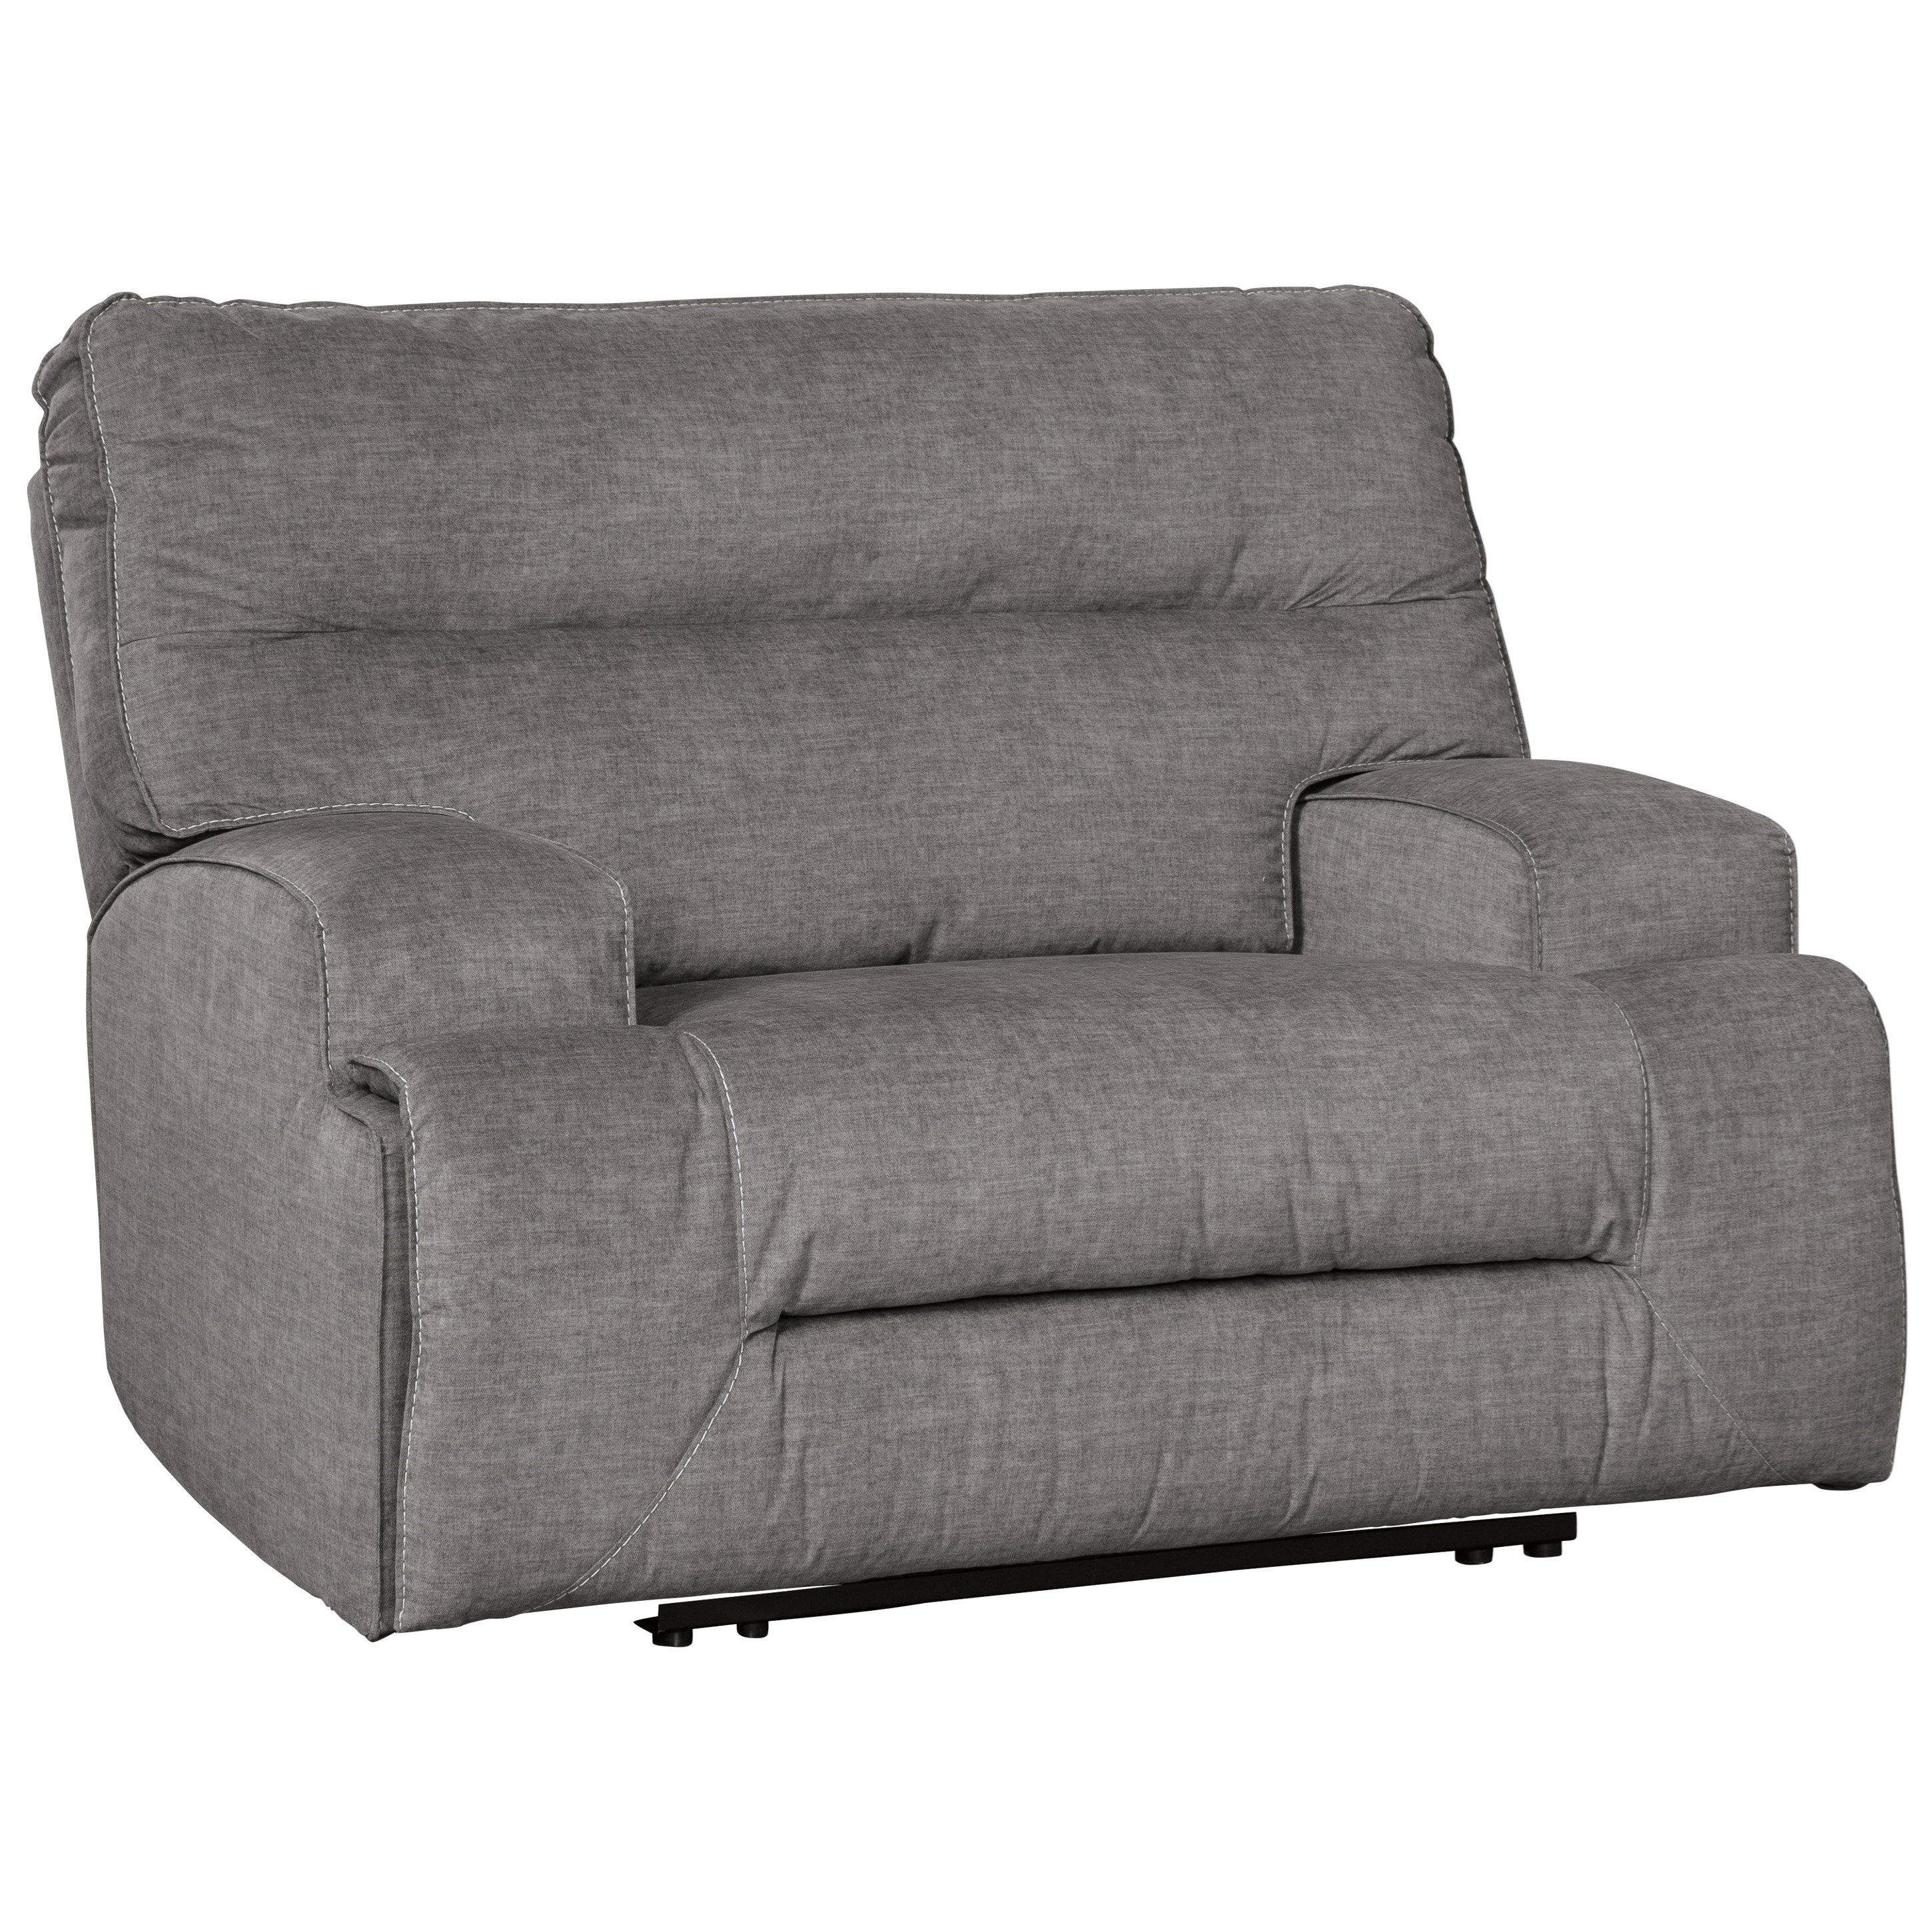 Coombs Wide Seat Power Recliner by Benchcraft at Miller Waldrop Furniture and Decor